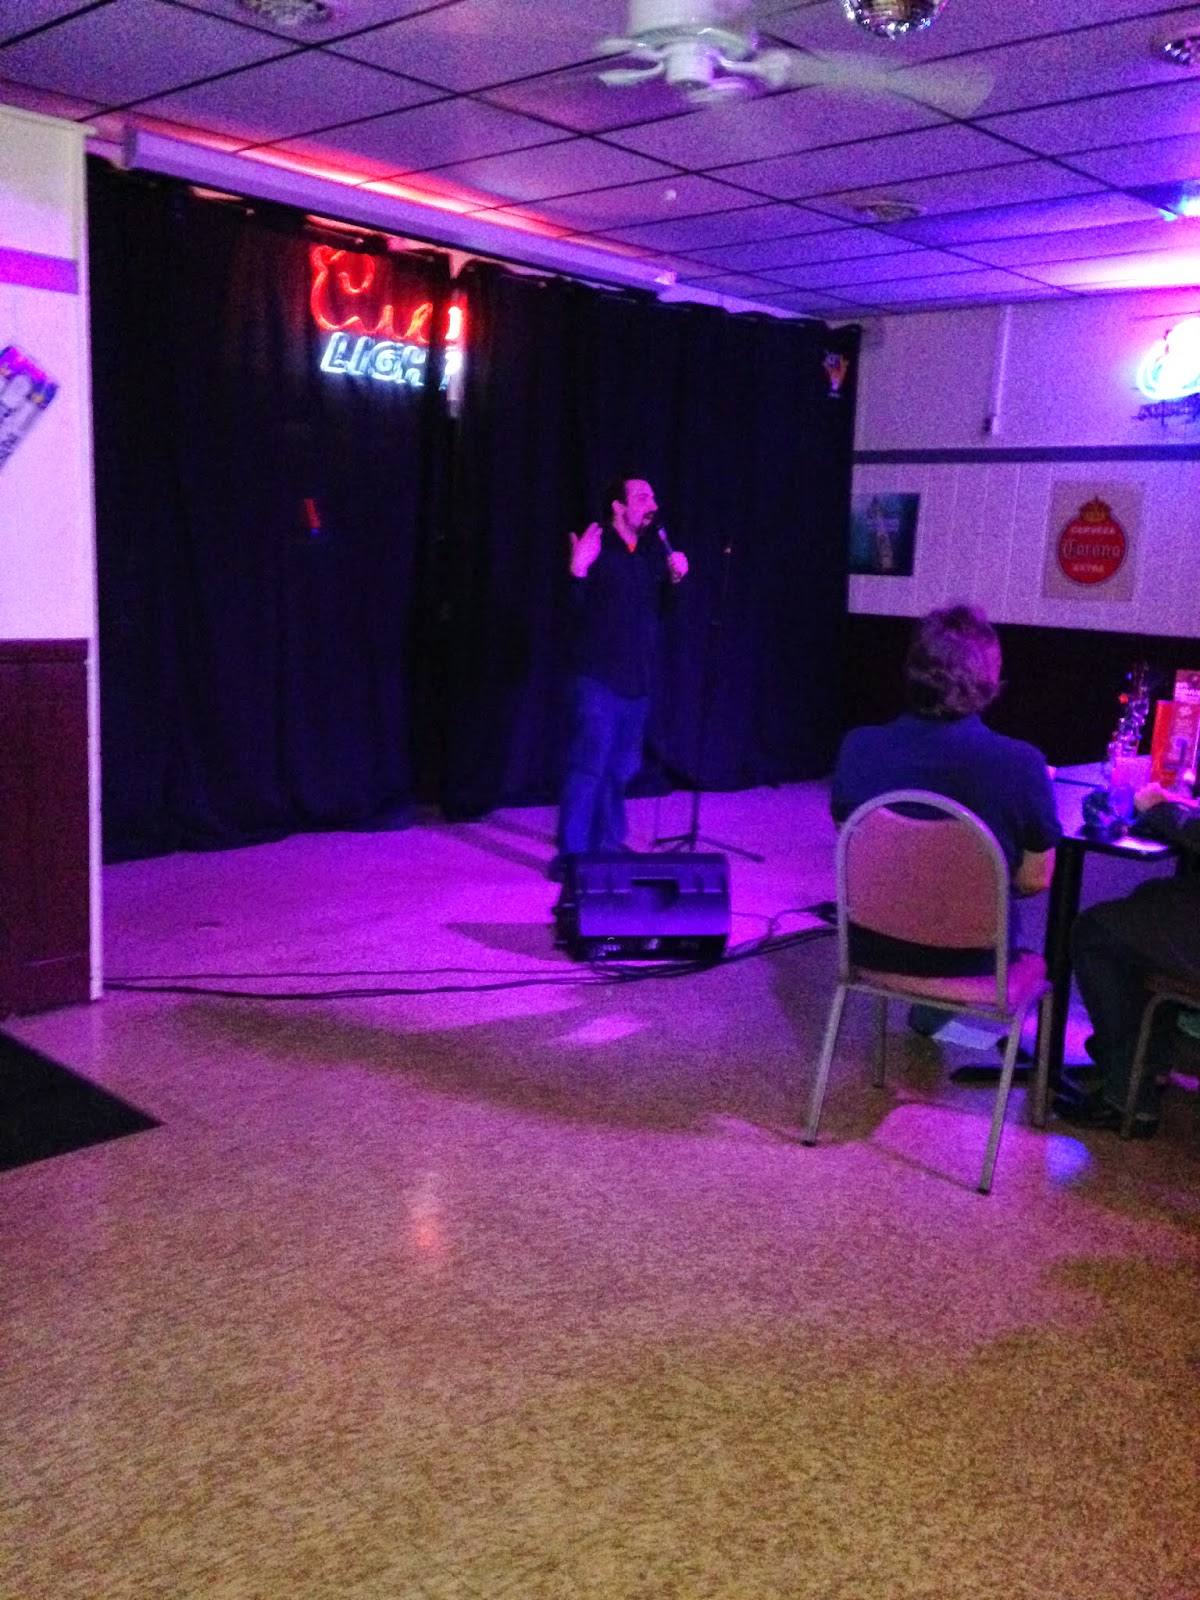 Stand-Up Comedian Chris Gullo